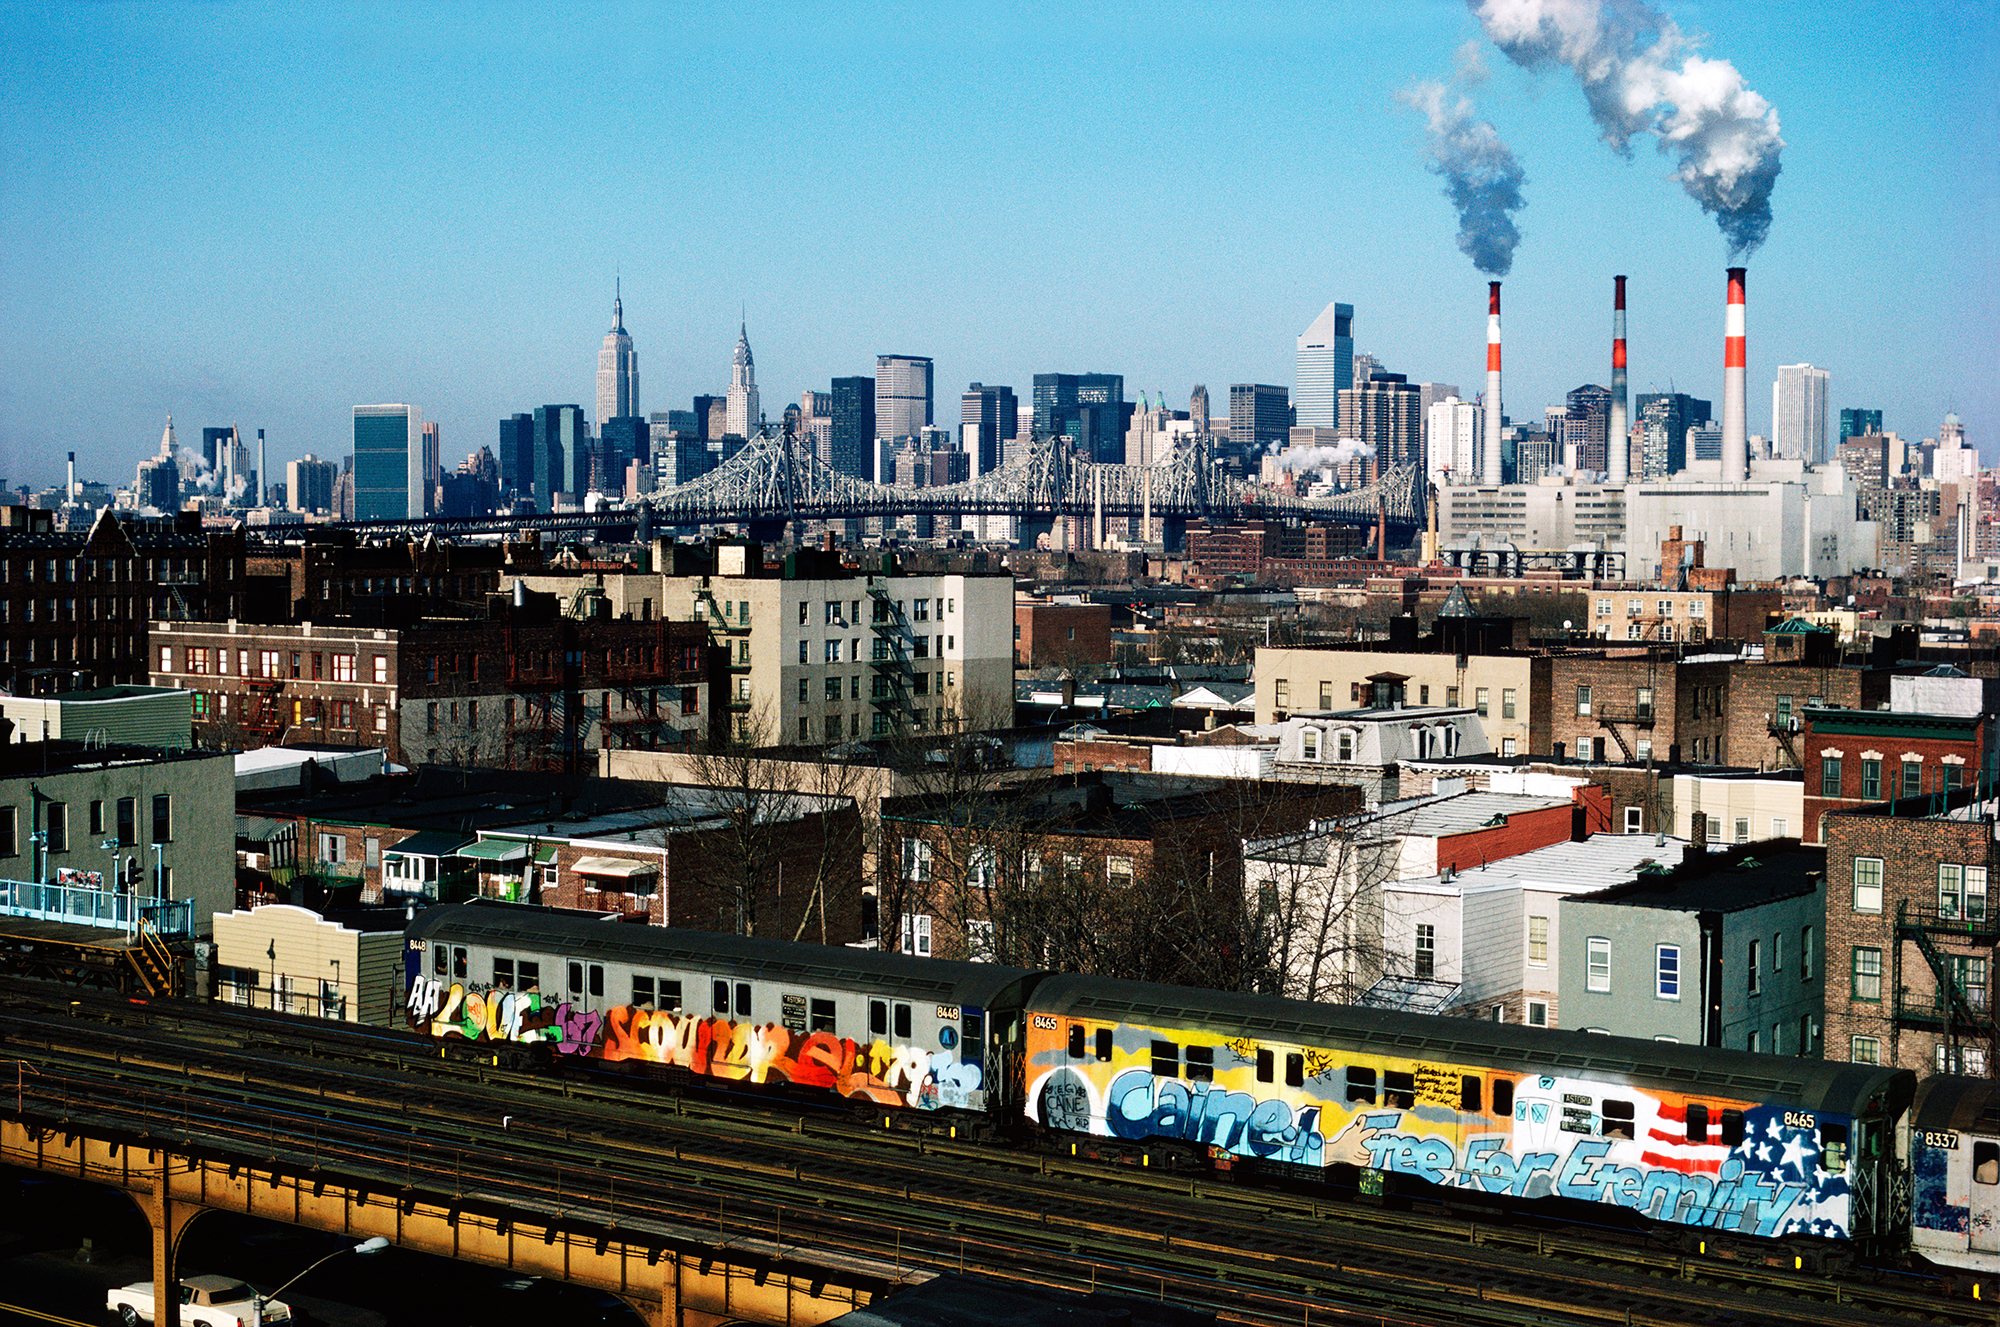 Memorial Train for Craine1  Free For Eternity  by MIDG, Astoria, Queens, NY, 1982